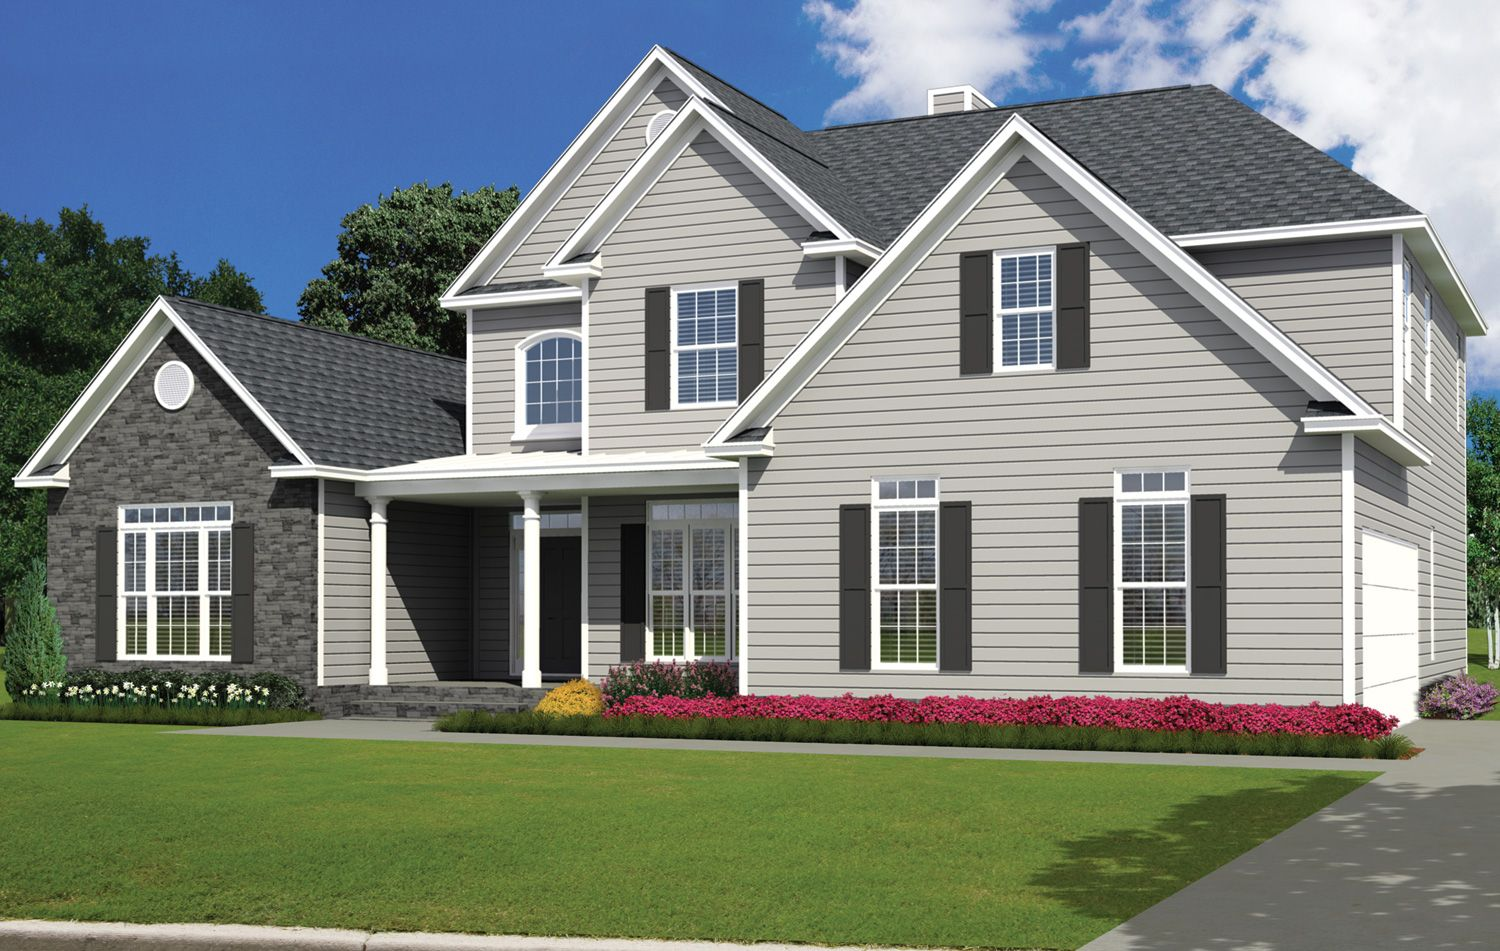 Single Family for Active at Build On Your Lot Monroe Building Center - Wellington A 2608 Executive Point Dr Monroe, North Carolina 28110 United States